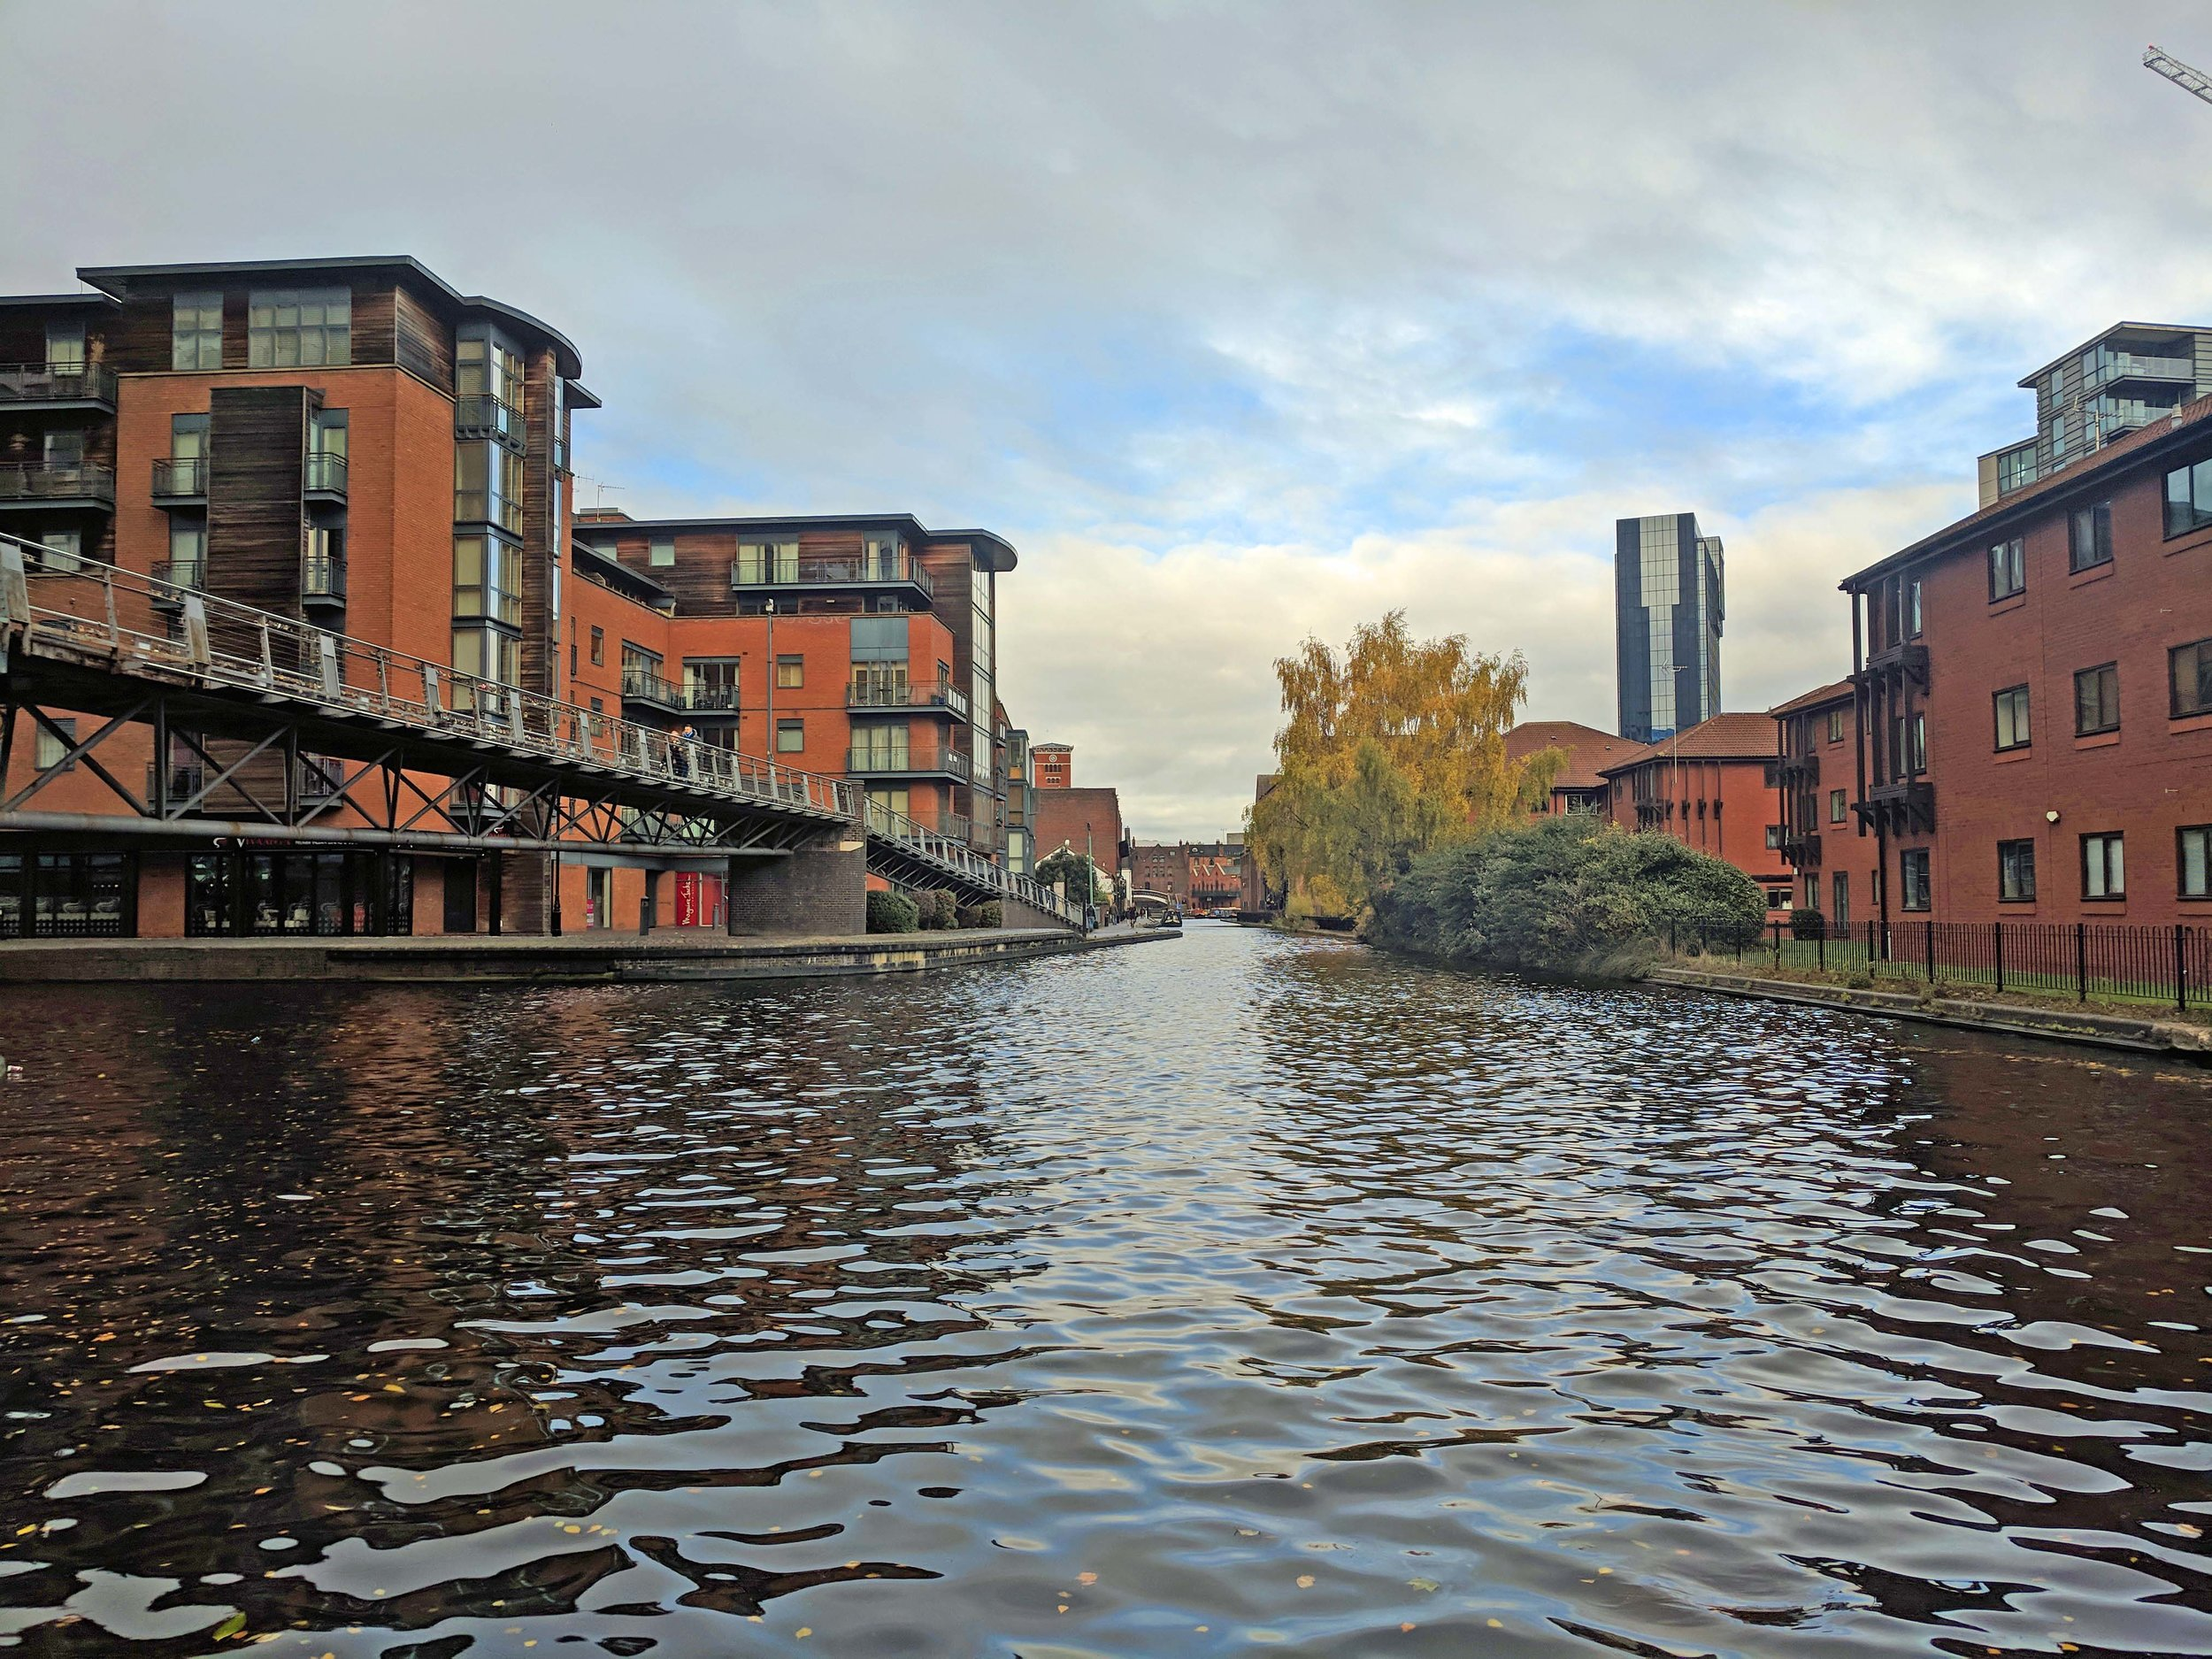 Birmingham: Not known for it's beauty, but the canals are quite pretty.